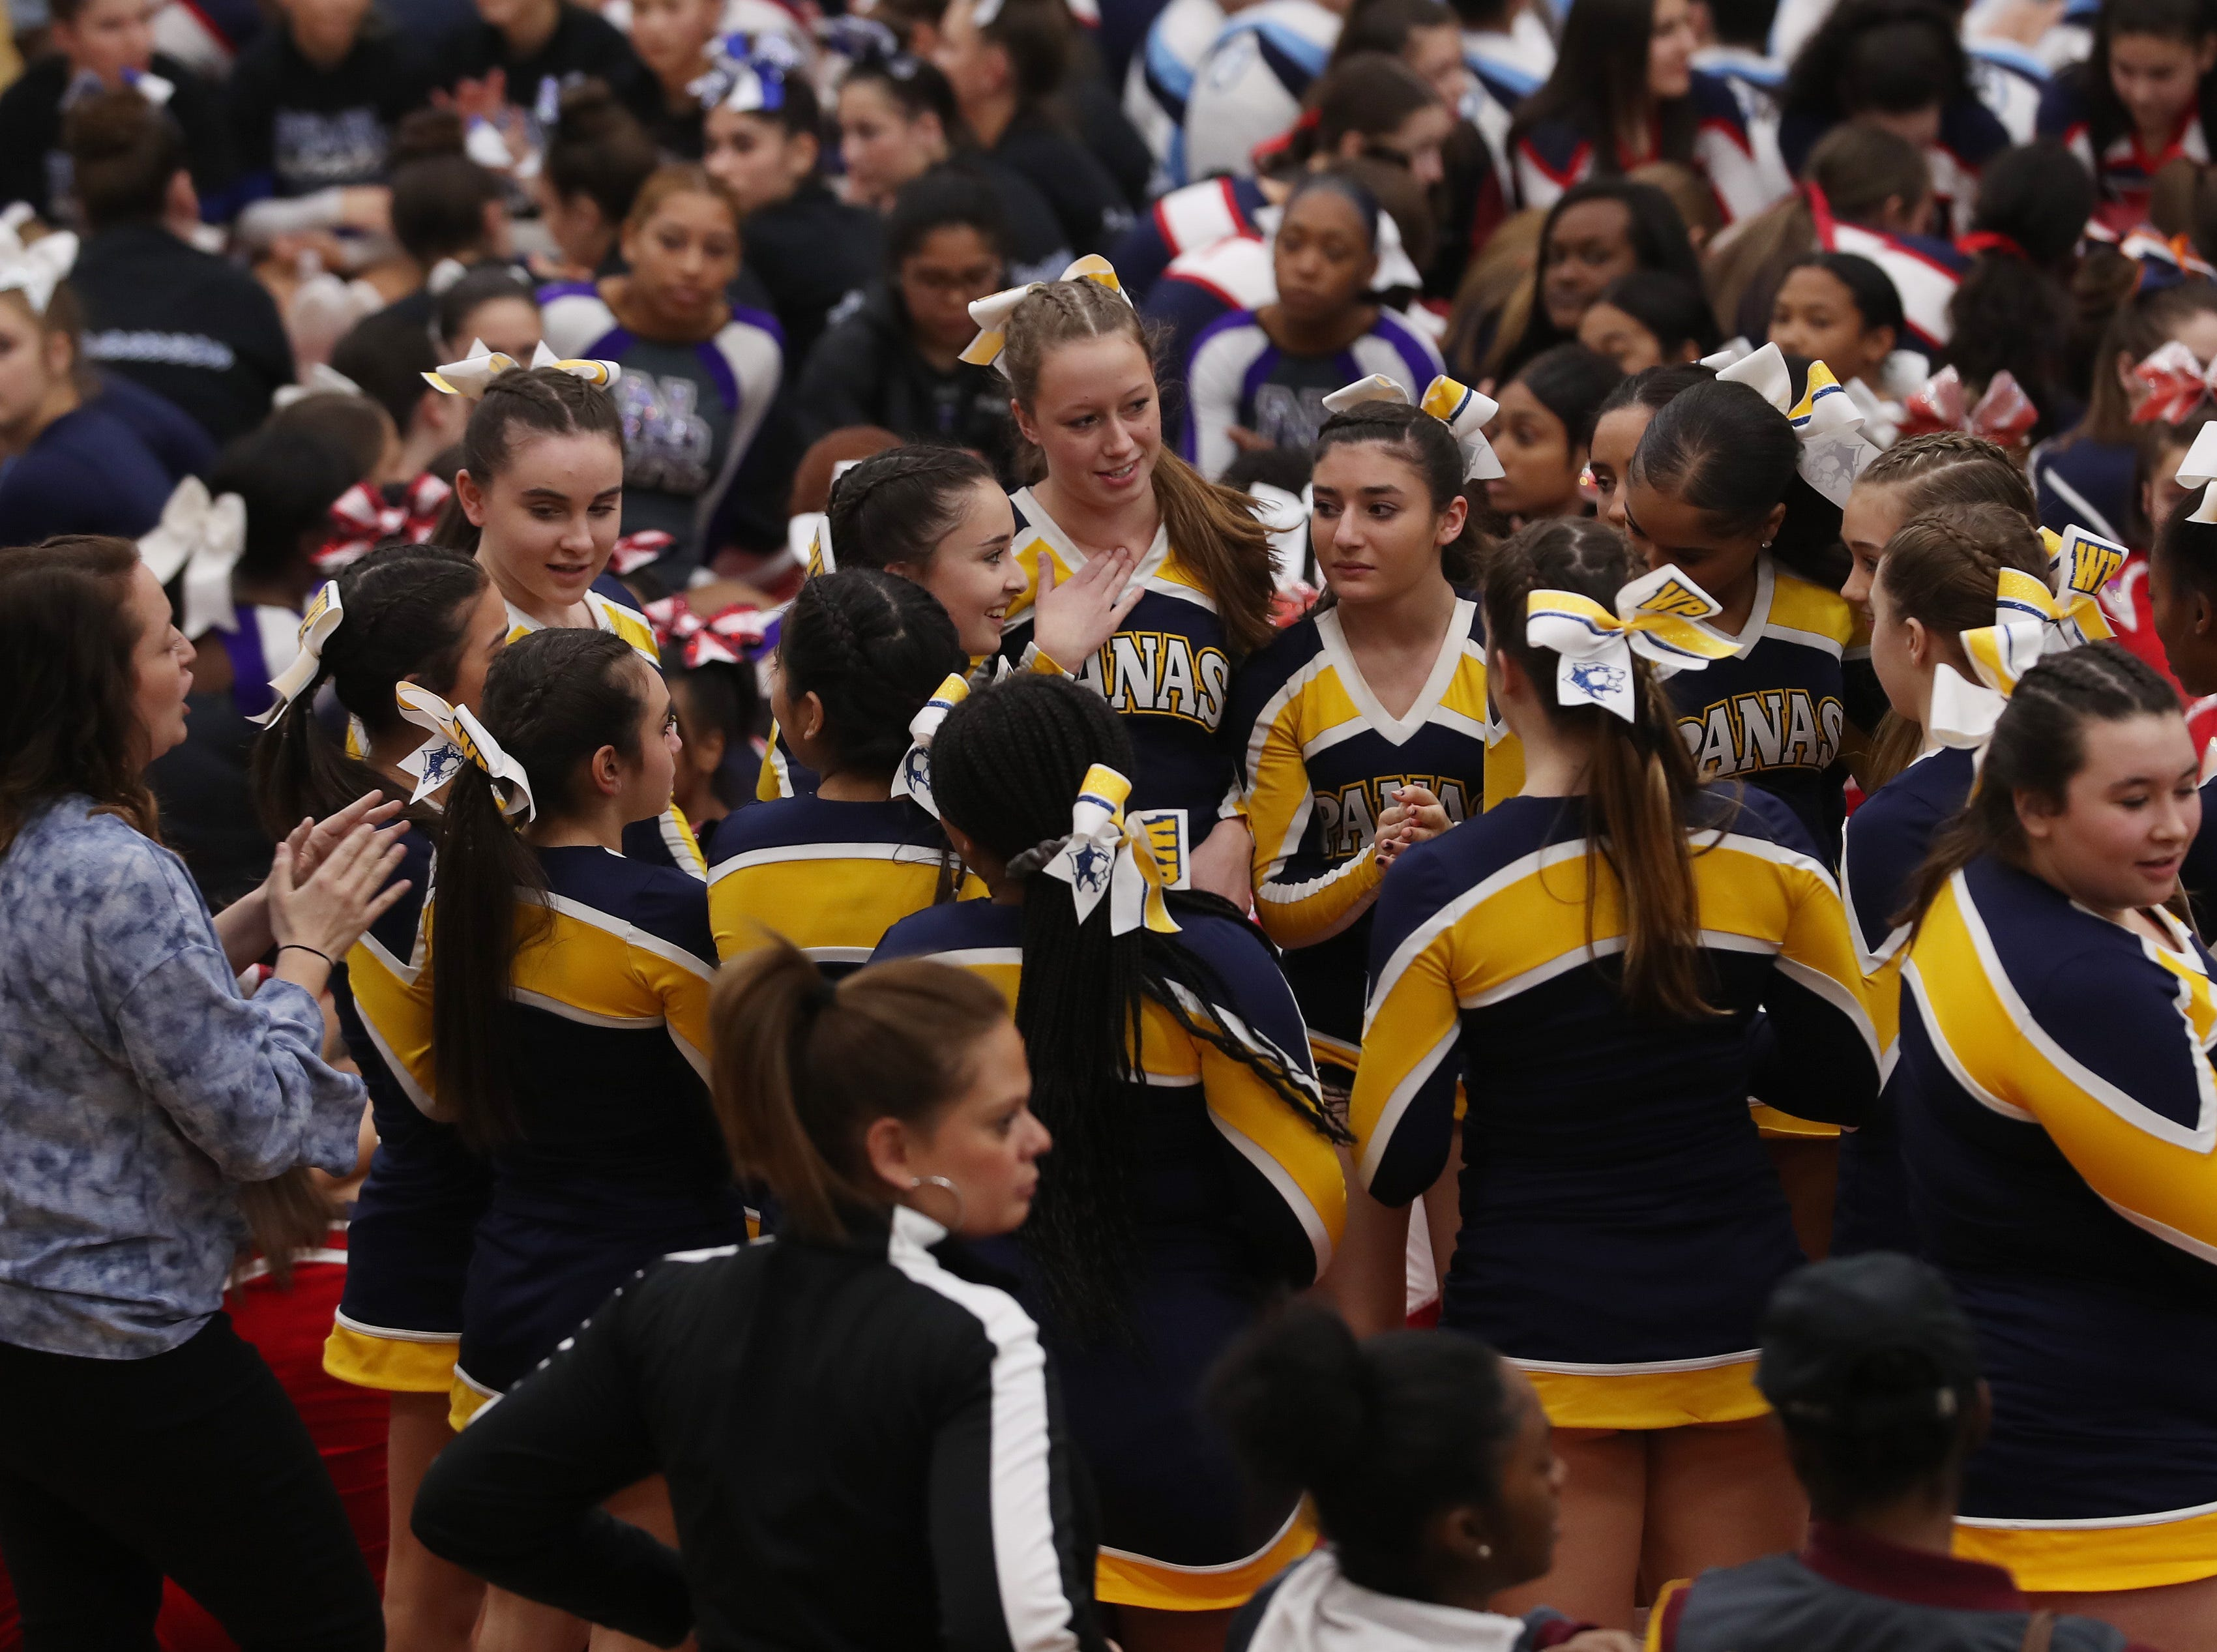 The Section 1 cheerleading championships at Arlington High School in Freedom Plains Feb. 16, 2019.